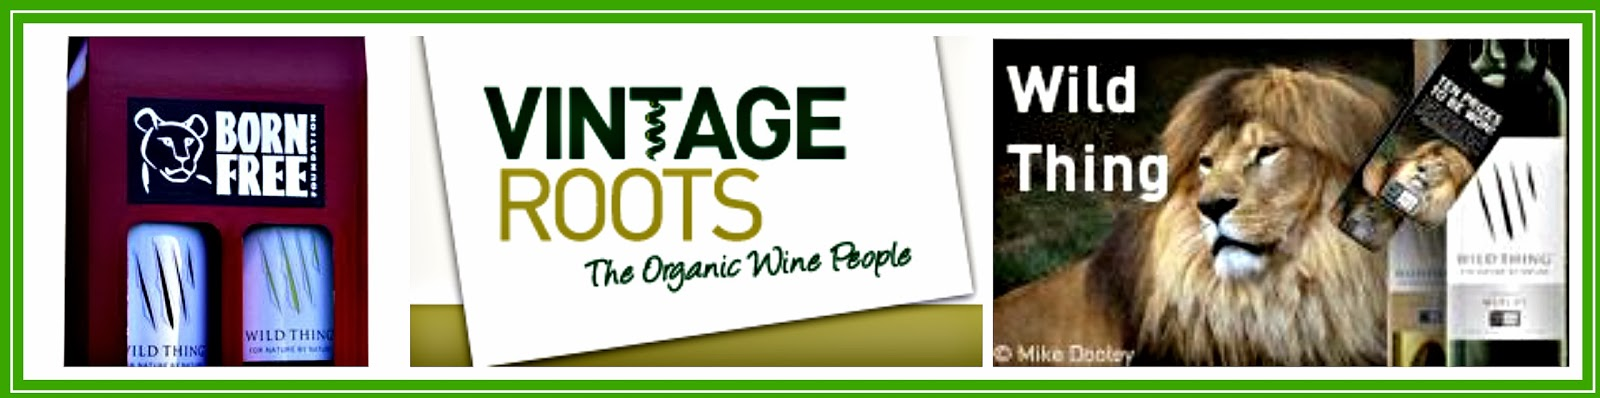 Organic Wine from Vintage Roots - The Organic Wine People - Born Free